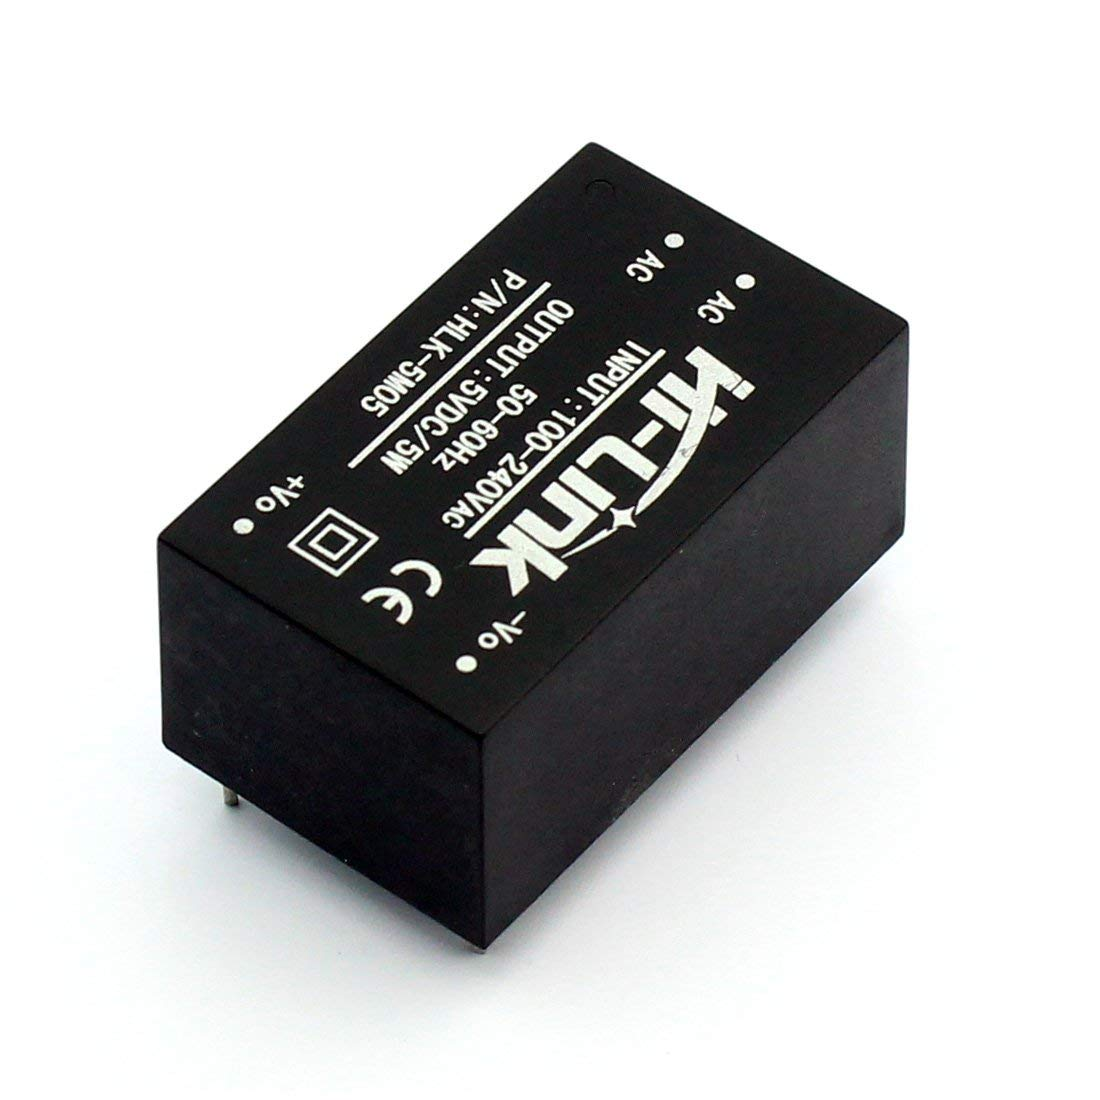 HLK-5M05 Isolated Power Supply Module AC-DC 220V to 5V 5W